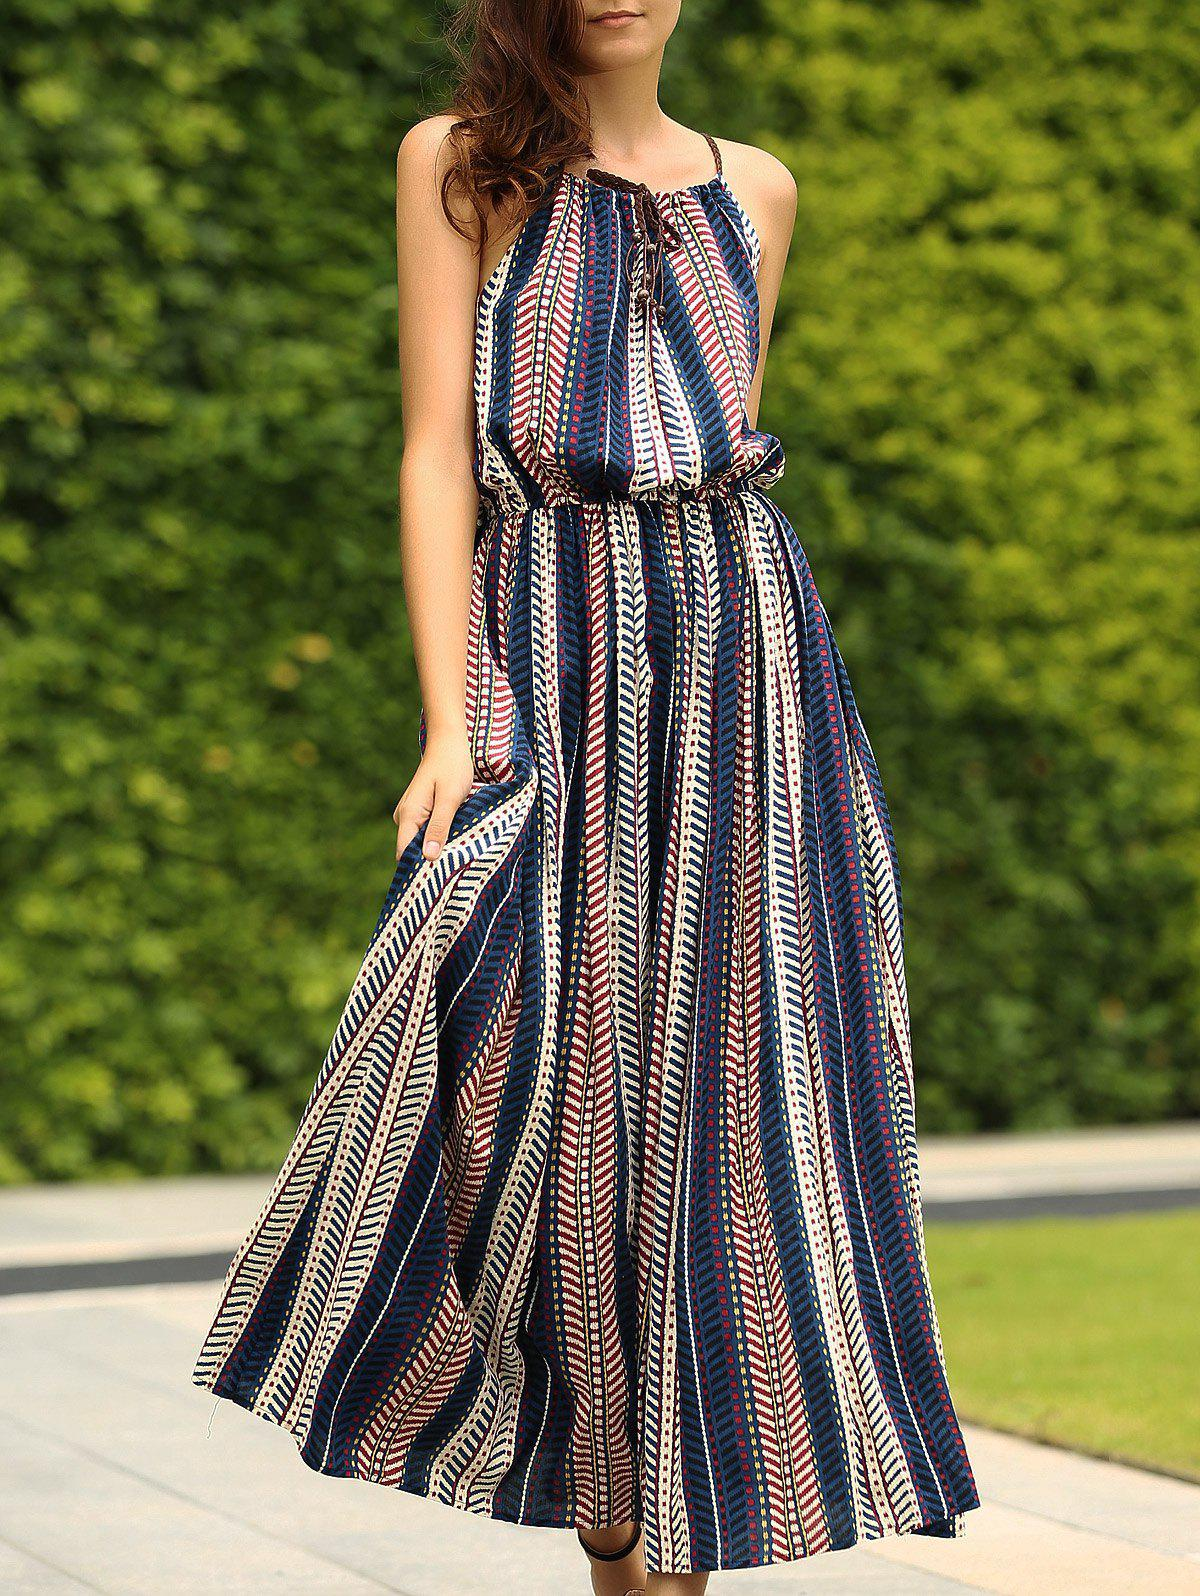 Bohemian Spaghetti Strap Sleeveless Striped Maxi Dress For Women